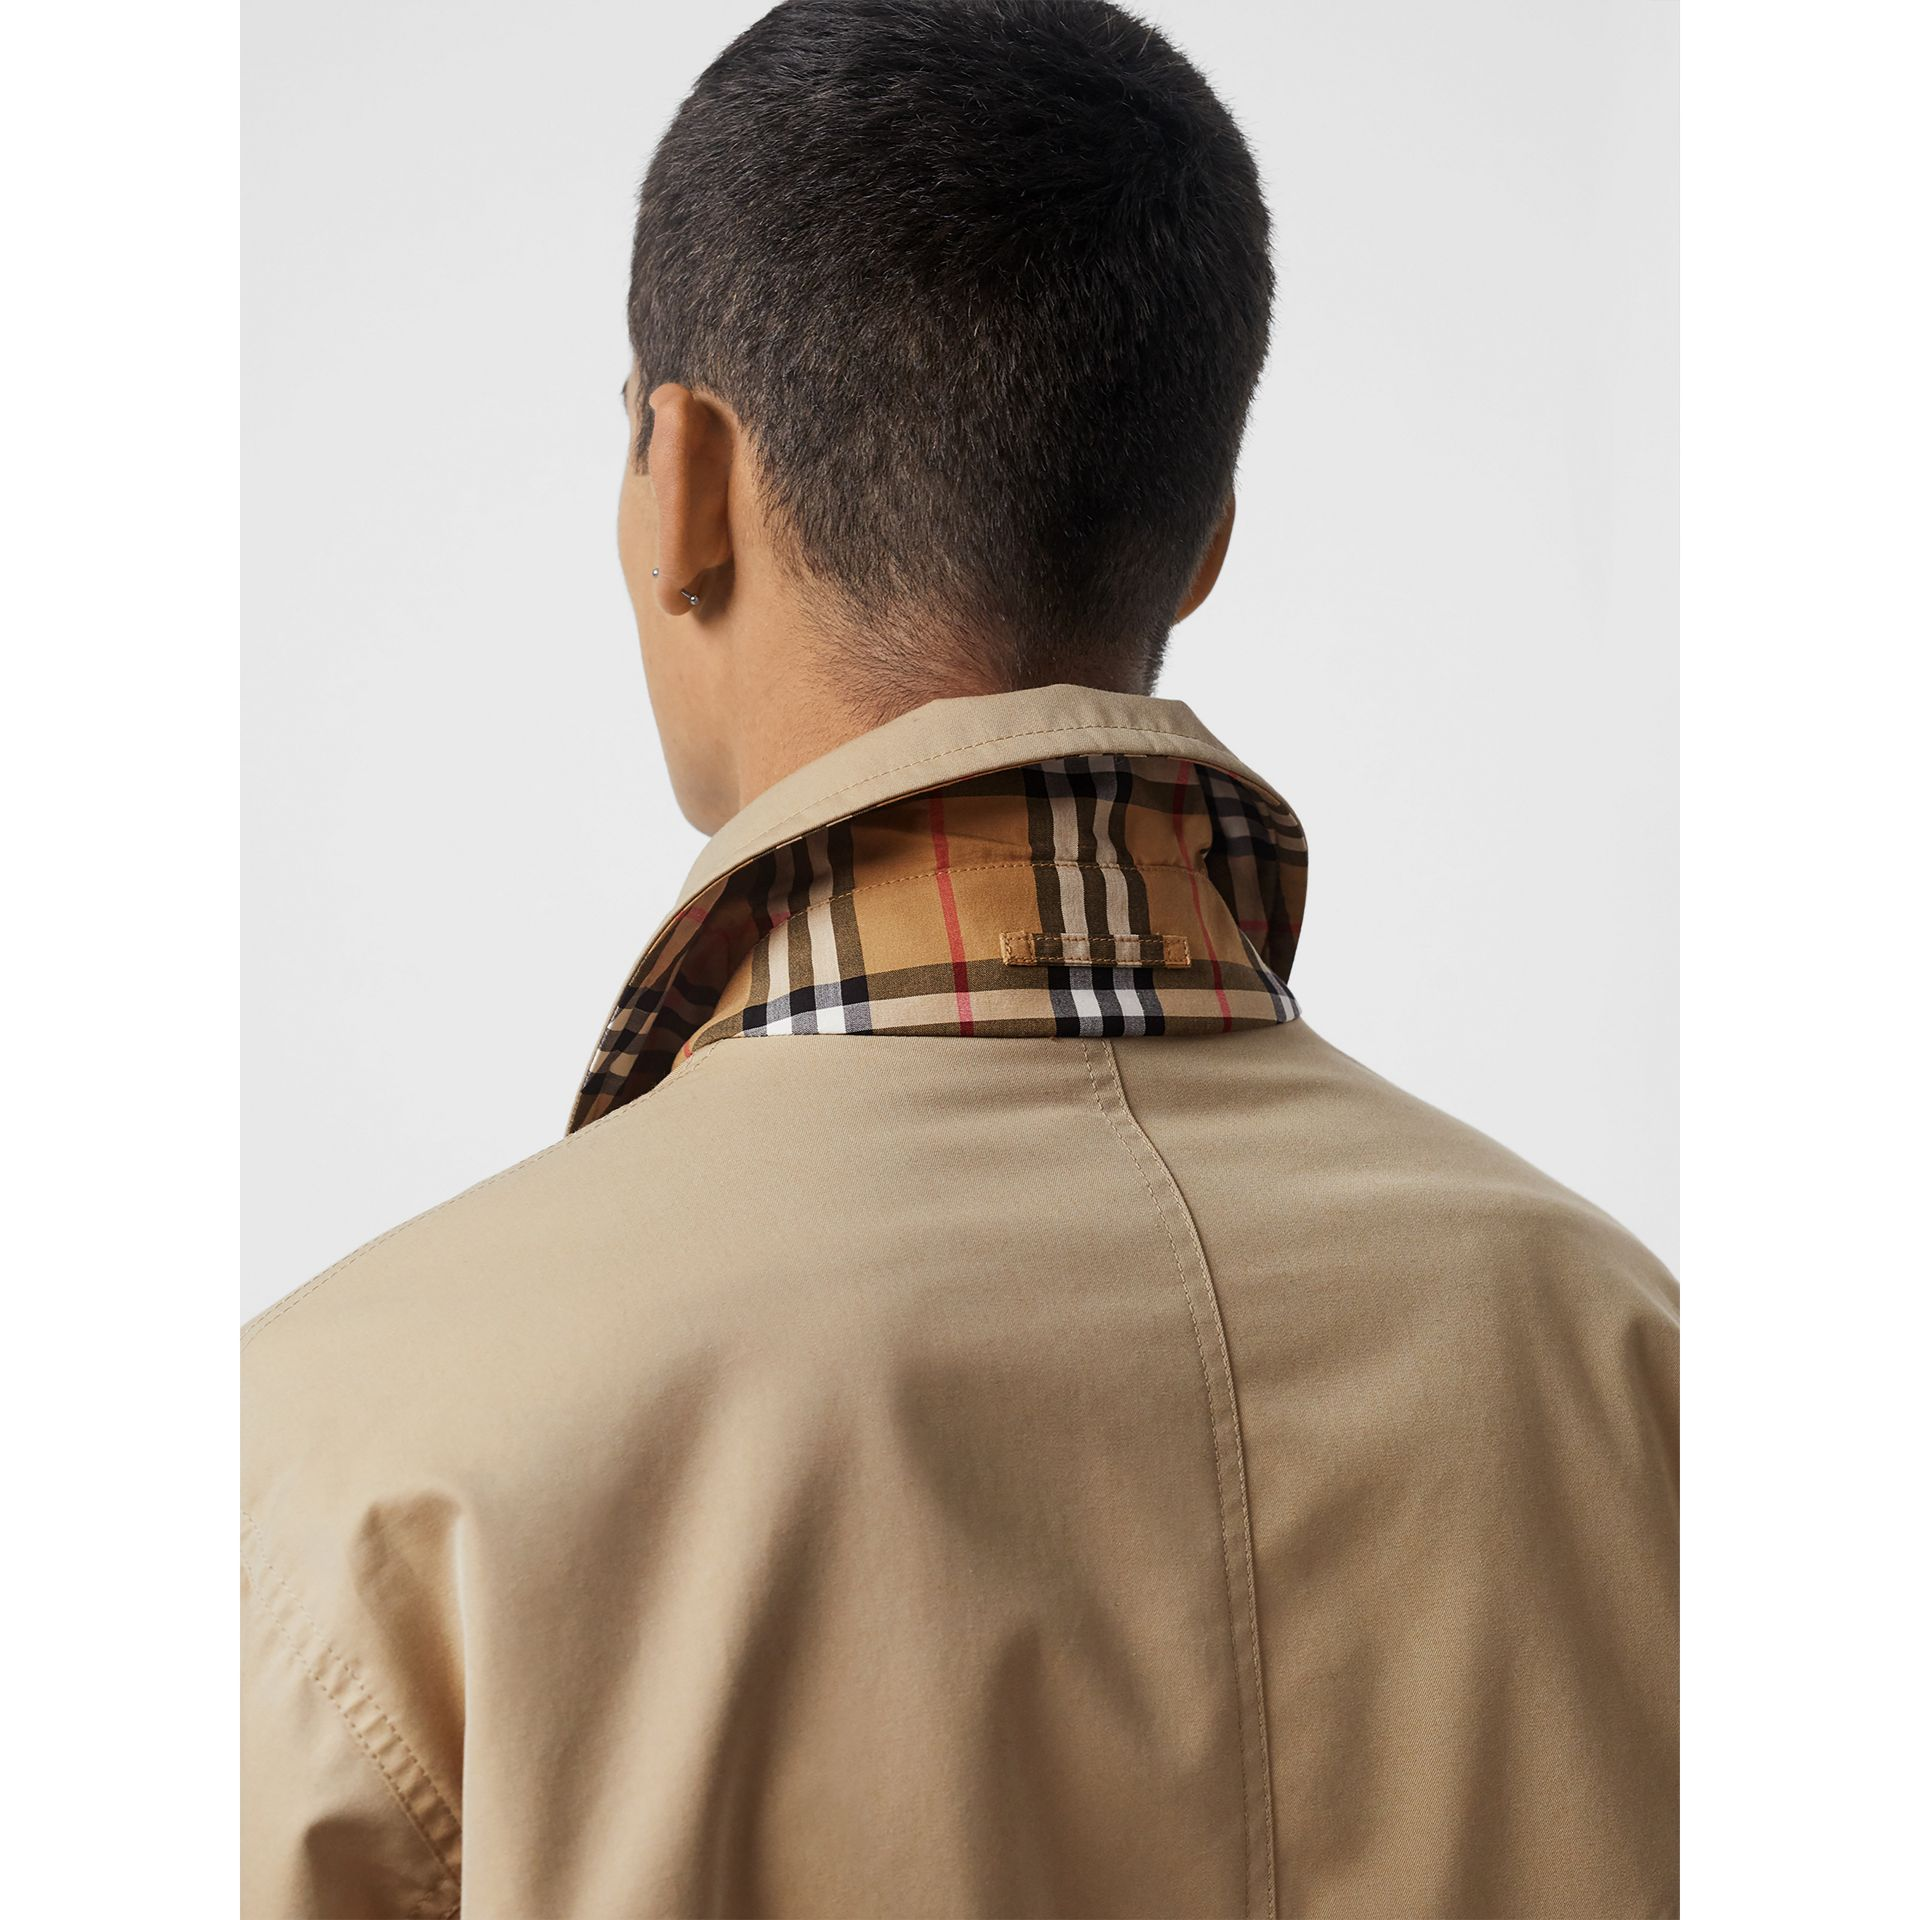 Veste Harrington réversible en gabardine et à motif check (Miel) - Homme | Burberry - photo de la galerie 2